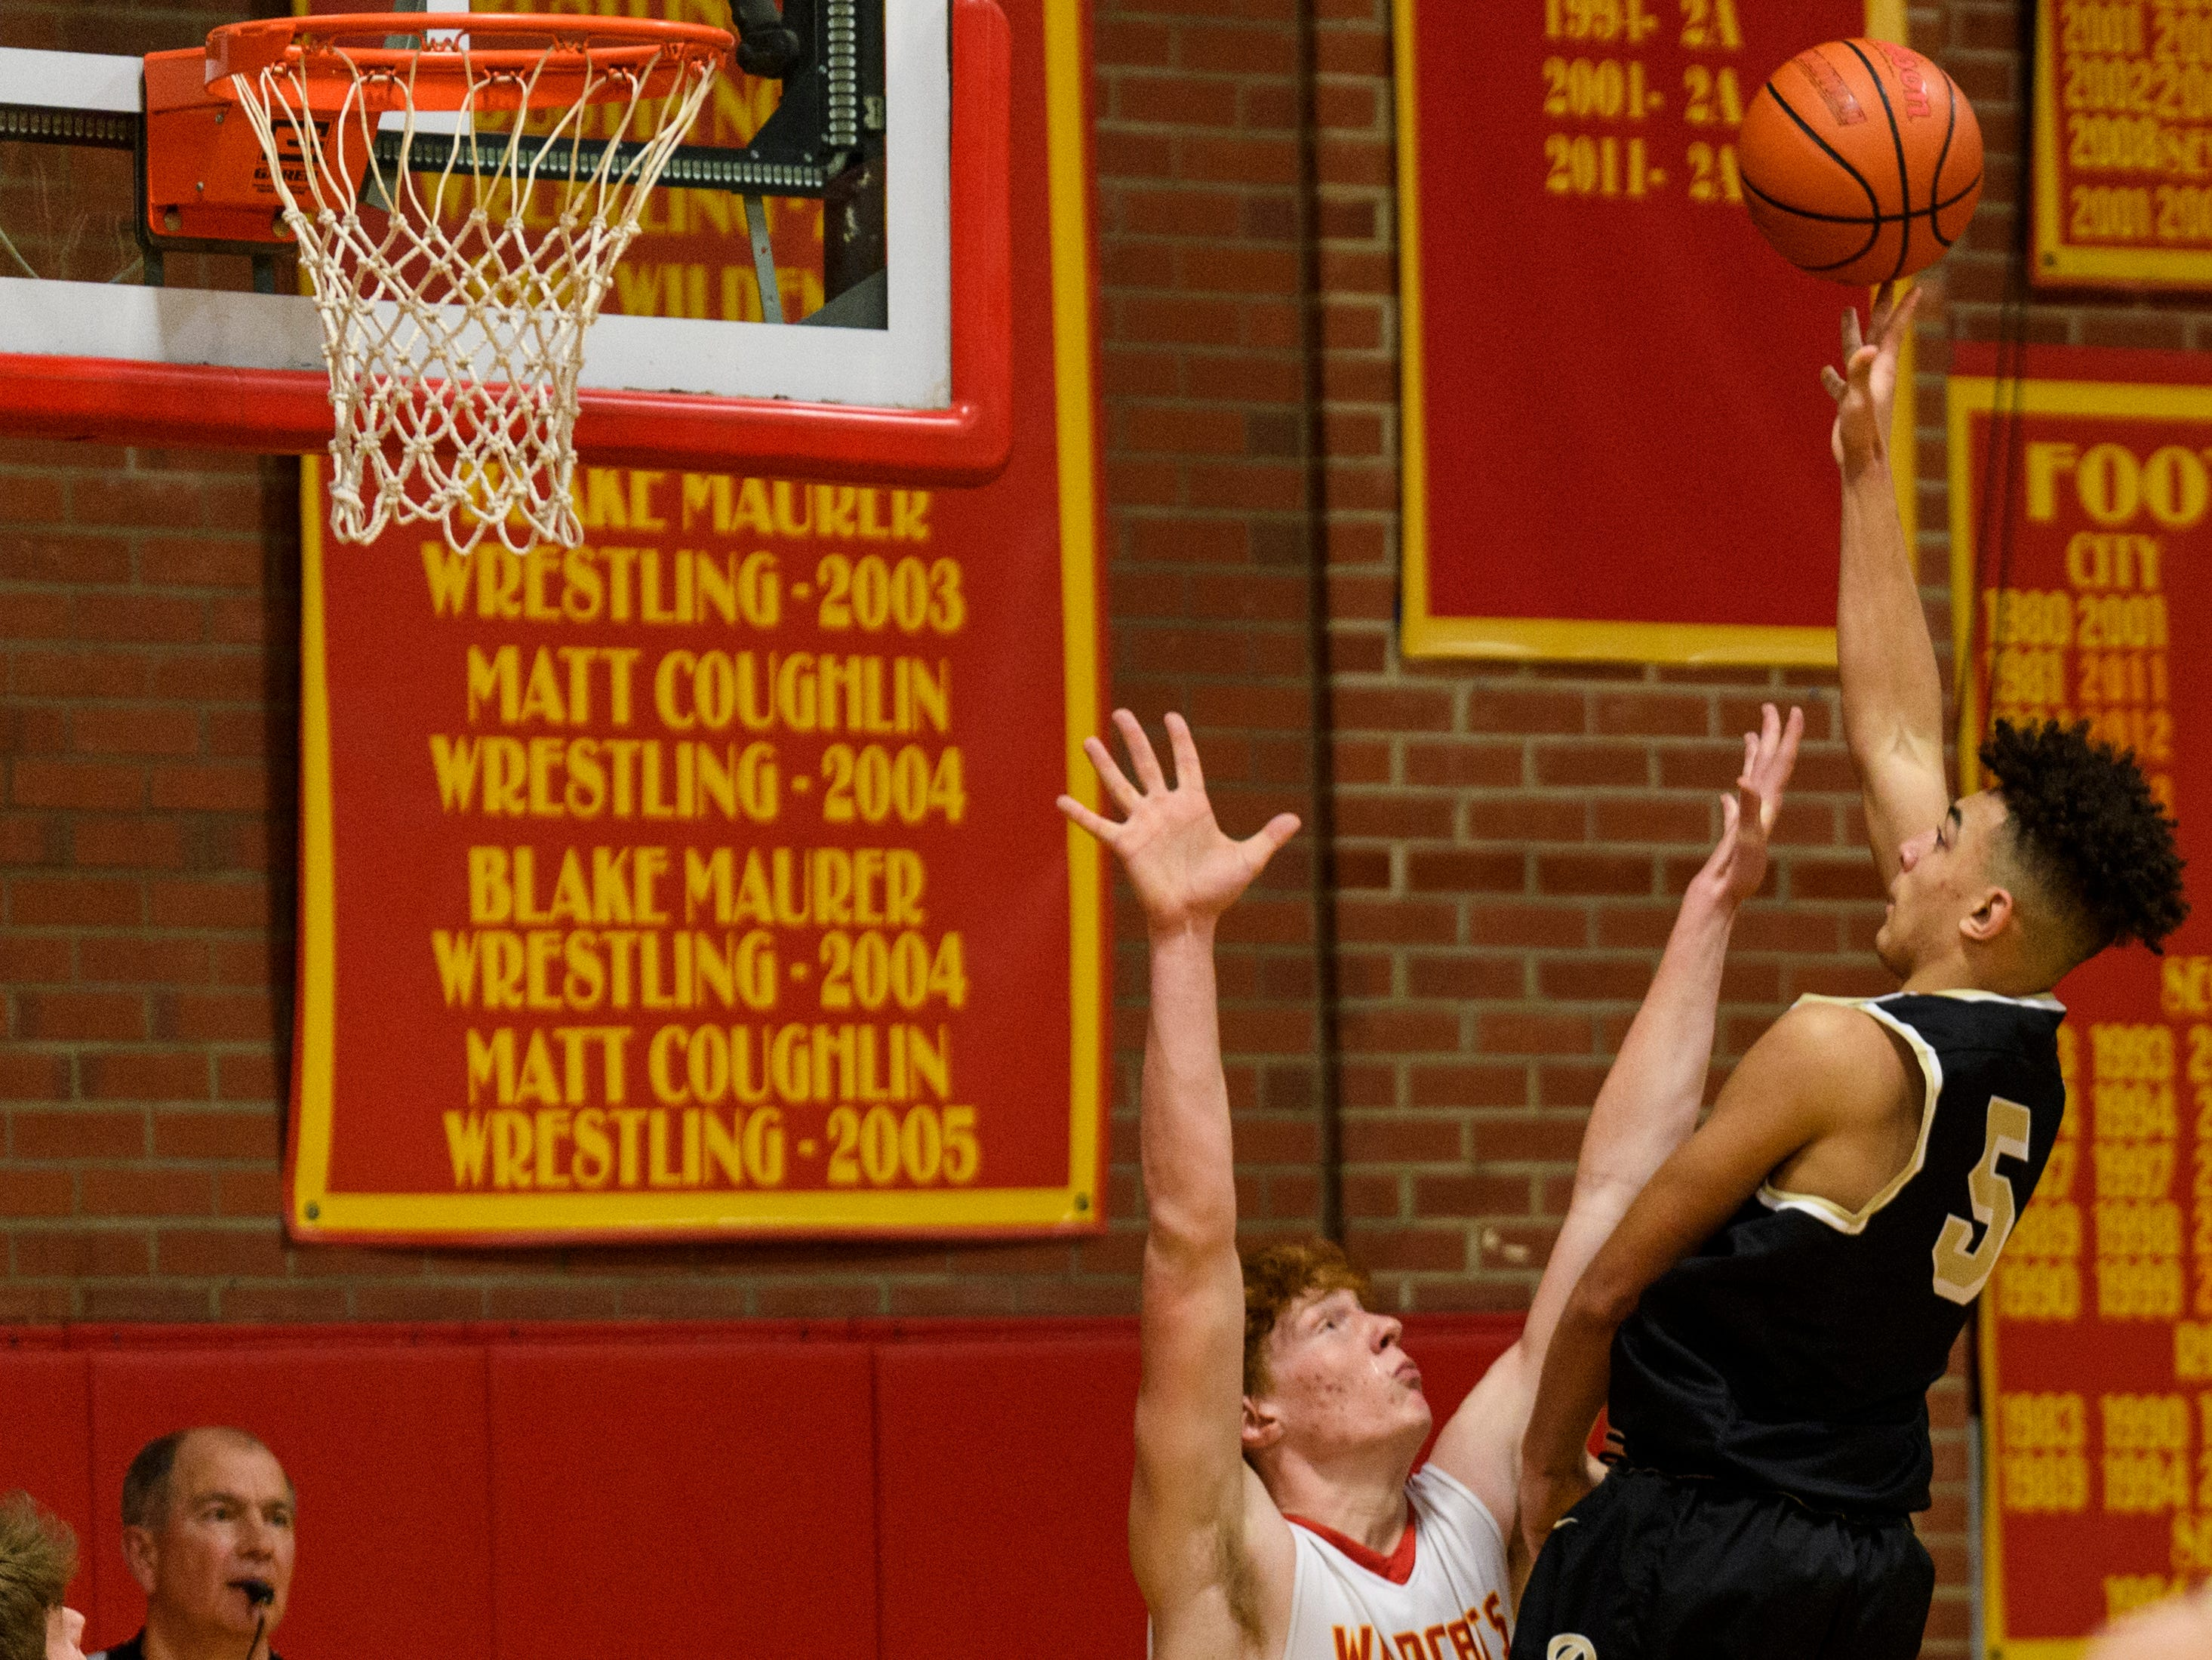 Mater Dei's Alex Money (40) attempts to block Boonville's Devin Mockobee (5) from the net during the second quarter at Mater Dei High School in Evansville, Ind., Saturday, Jan. 5, 2019. The Wildcats defeated the Pioneers, 93-65.